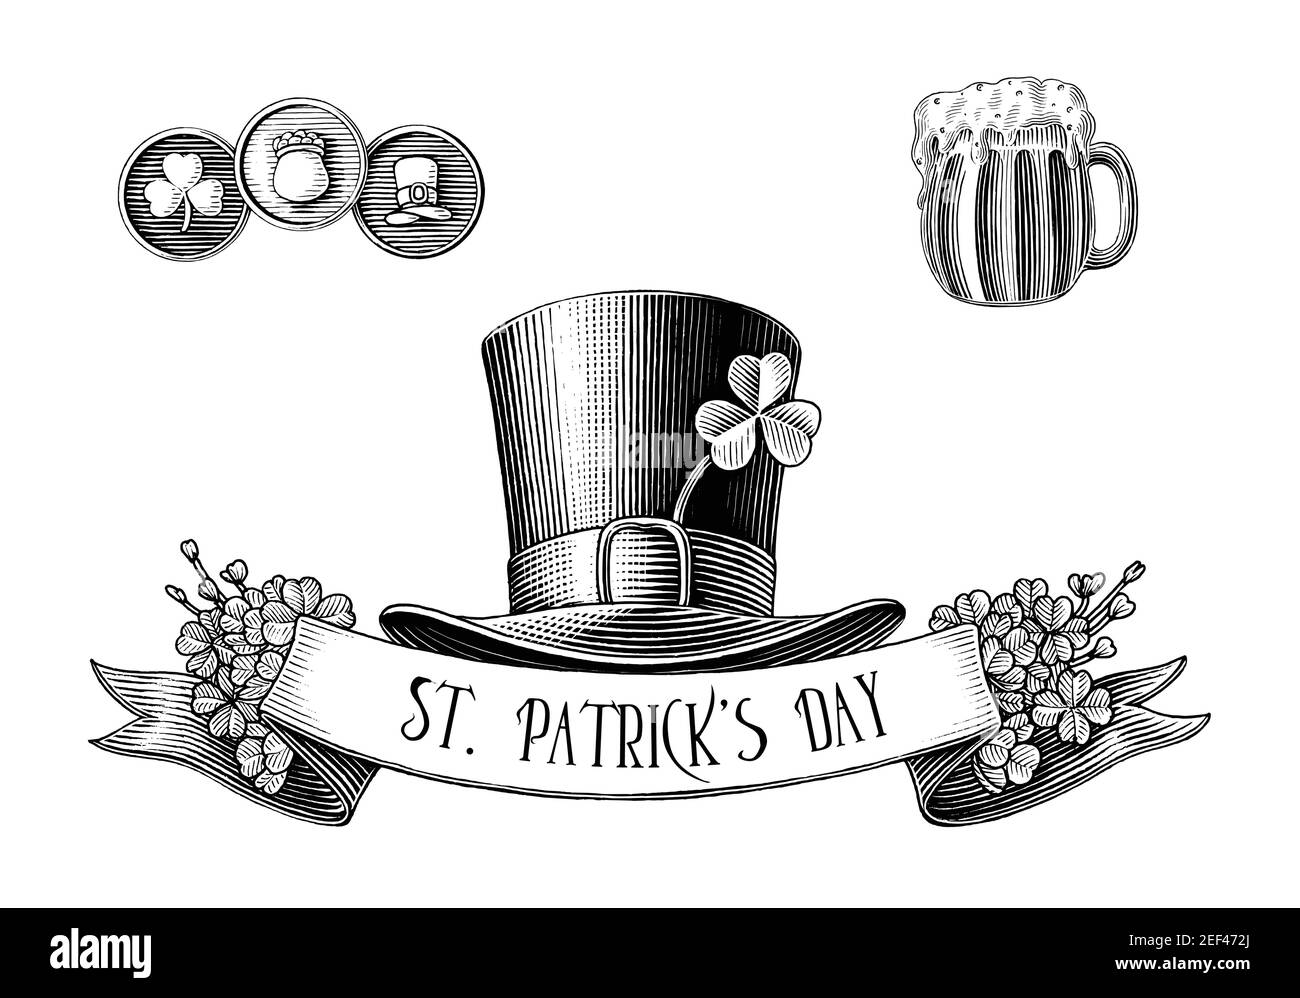 Saint Patrick's Day logo hand draw vintage engraving style black and white clip art isolated on white background Stock Vector